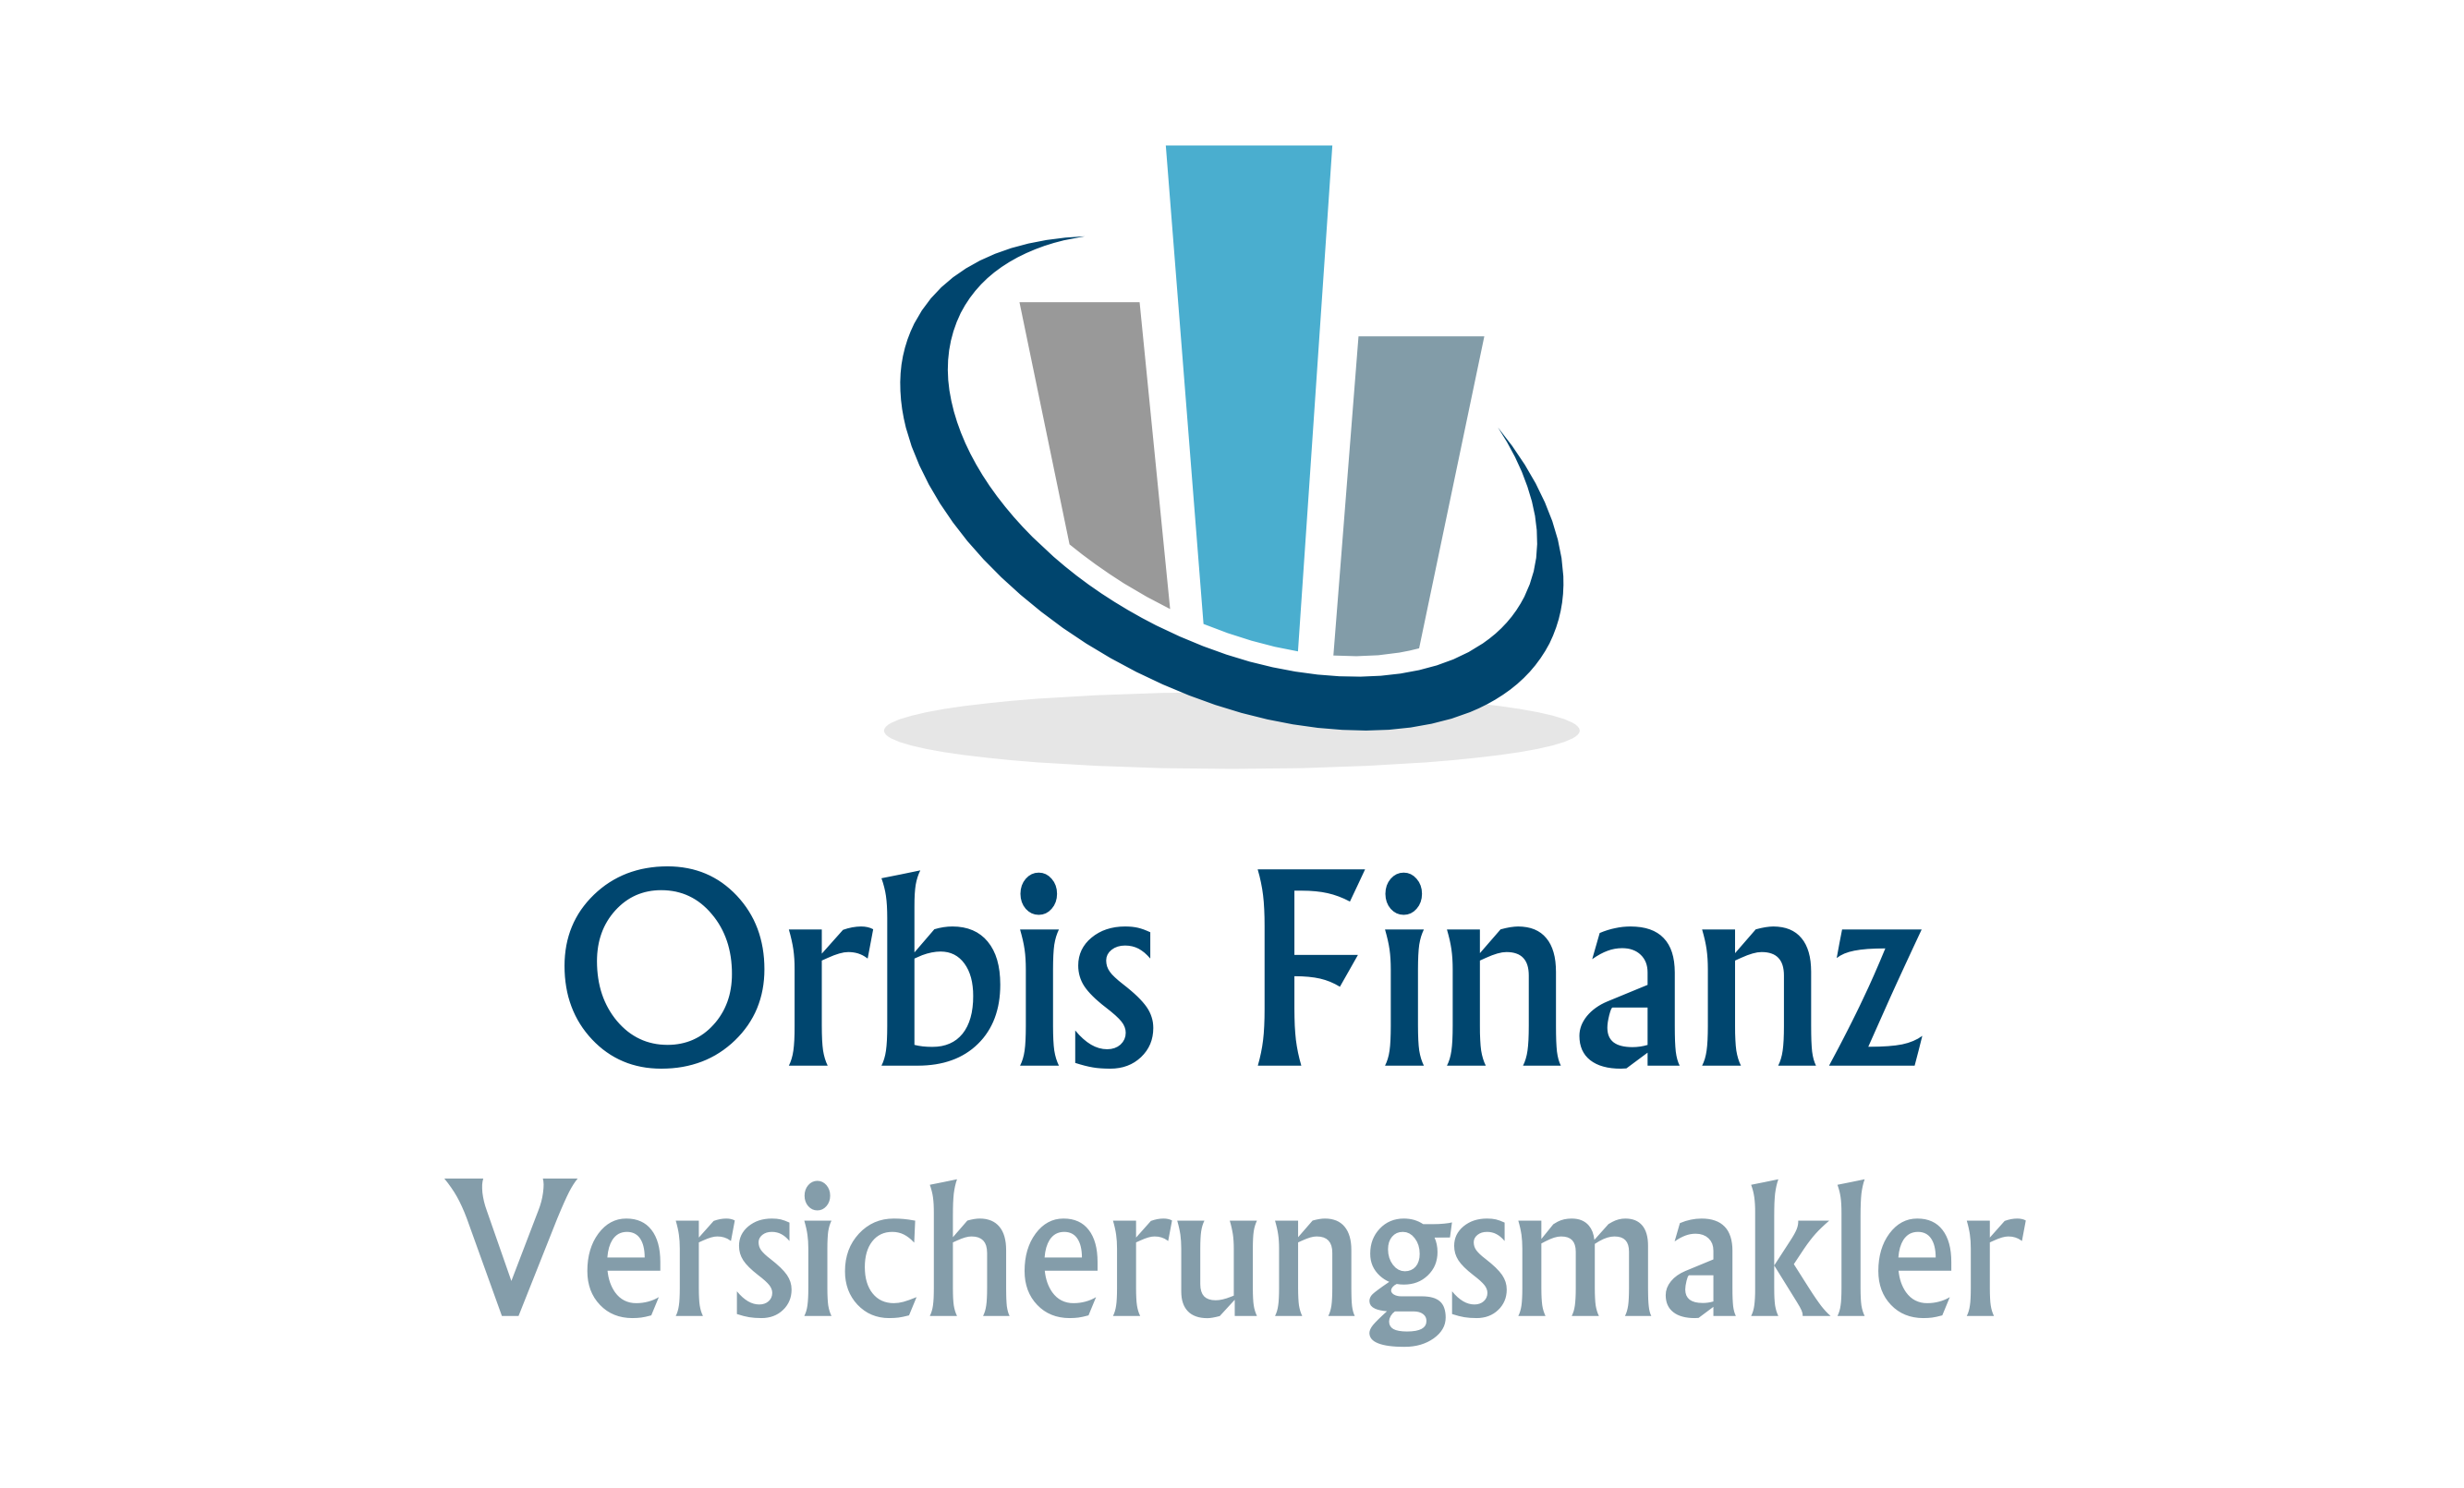 Orbis Finanzmanagement